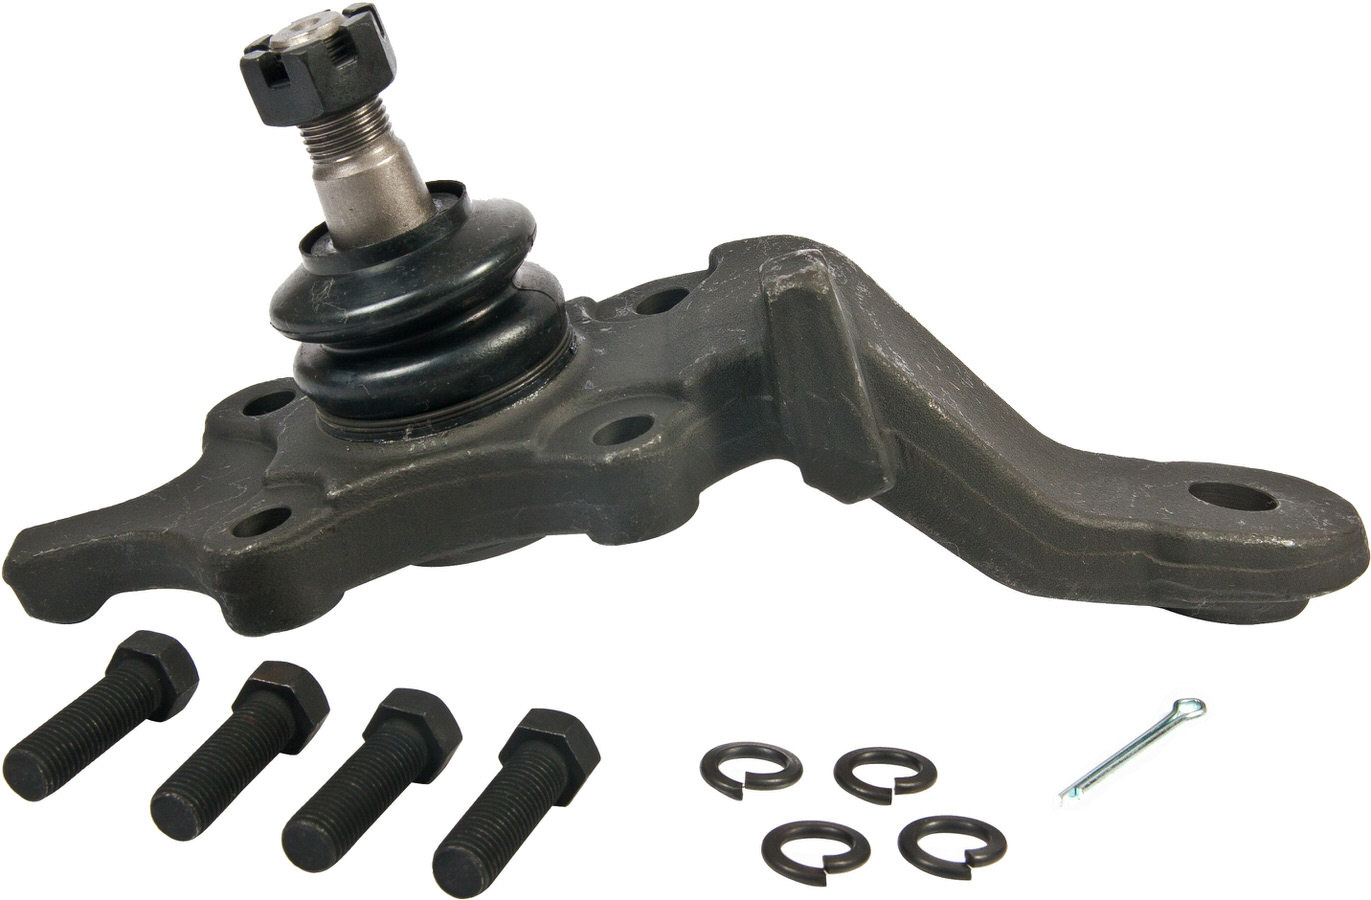 Proforged 101-10212 Ball Joint, Front, Driver Side, Lower, Bolt-In, Toyota Fullsize SUV 1996-2002, Each